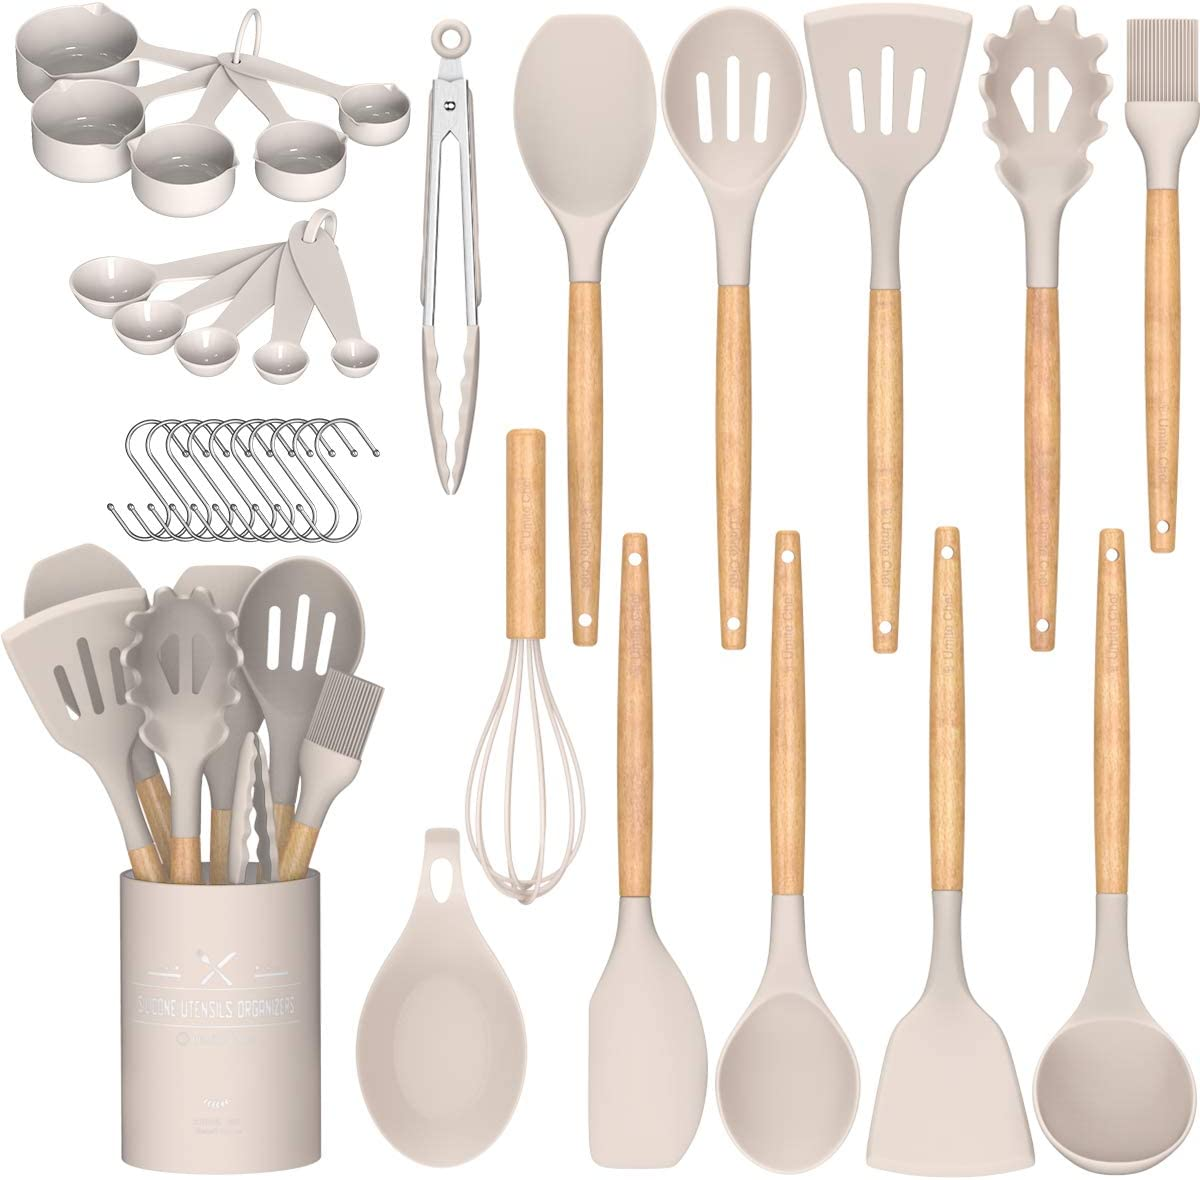 Umite Chef Kitchen Cooking Utensils Set, 24 pcs Non-stick Silicone Cooking Kitchen Utensils Spatula Set with Holder, Wooden Handle Heat Resistant Silicone...